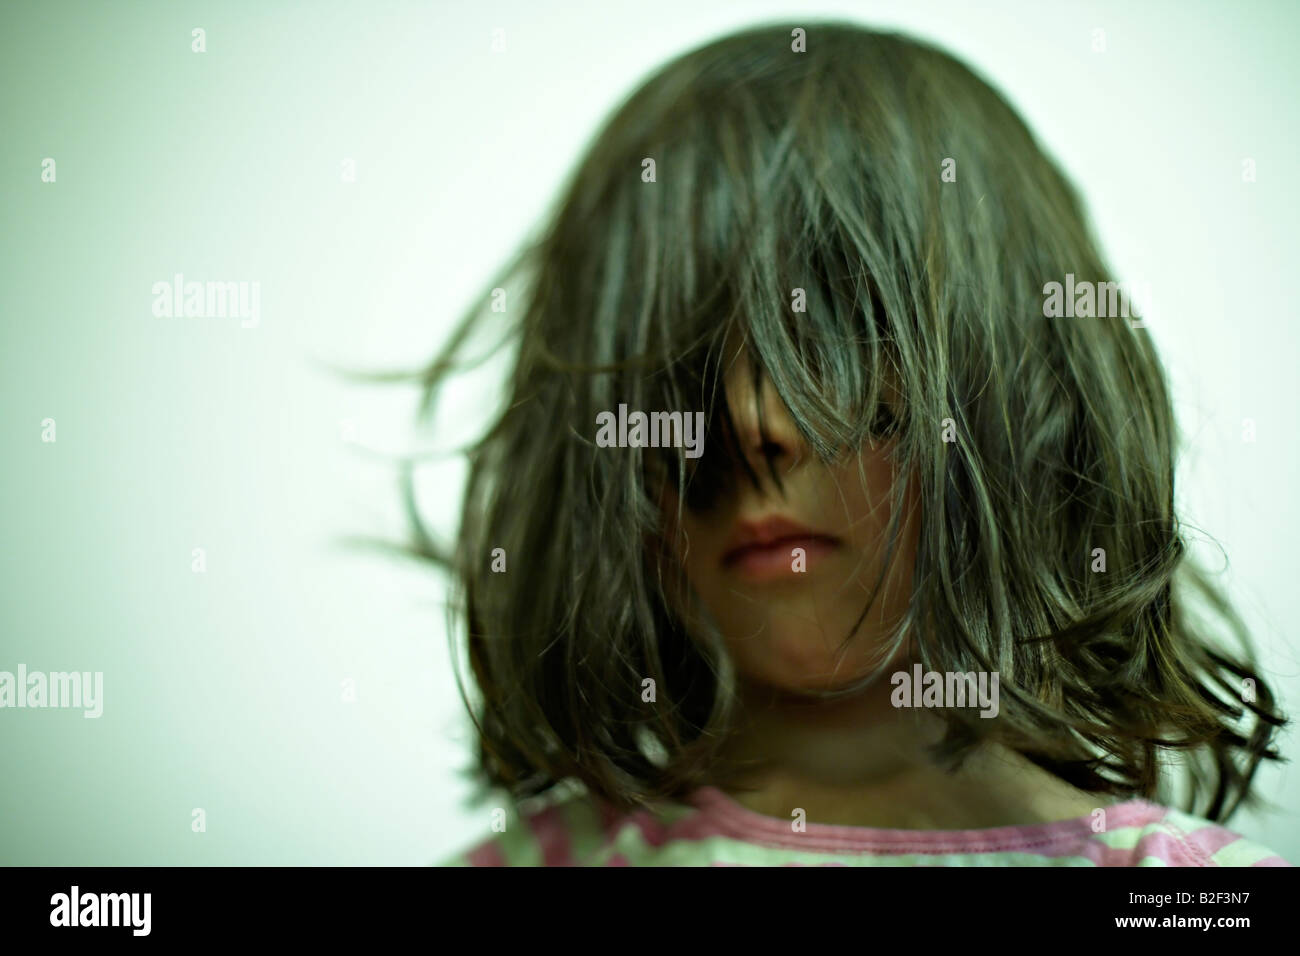 Five year old girl with messy hair - Stock Image